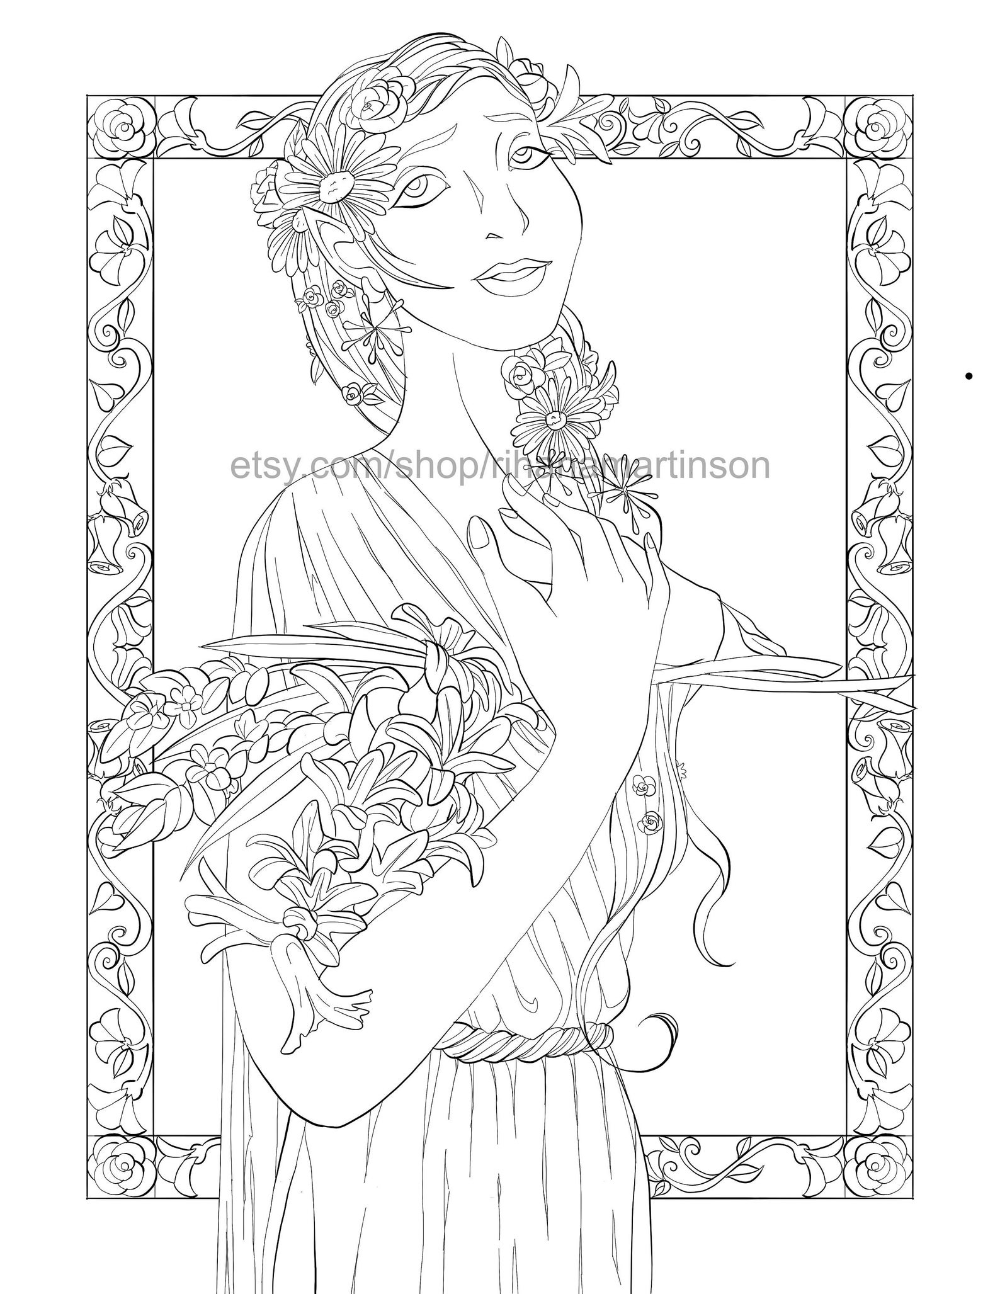 fantasy elf coloring pages coloring page for adults fantasy elf elven woman with fantasy pages coloring elf